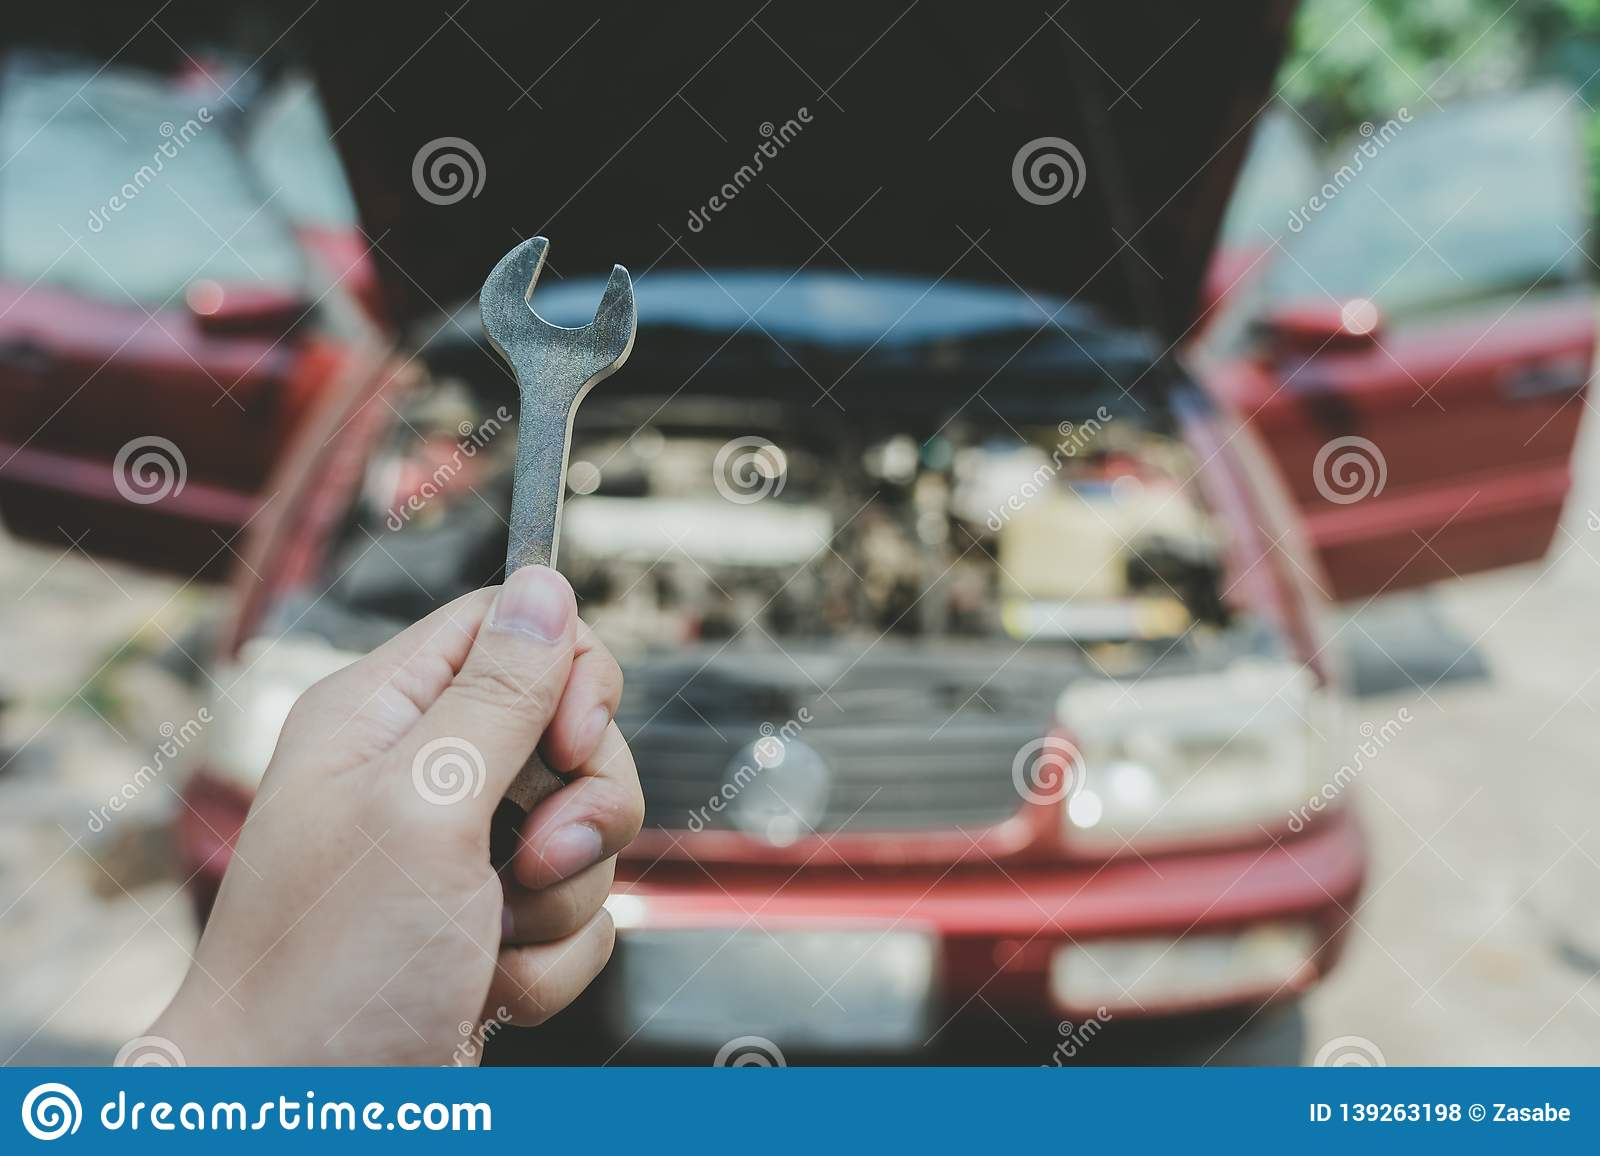 Mechanical engineer hands open the car skirt to check the oil level of the car. The concept of engine maintenance Travel safely